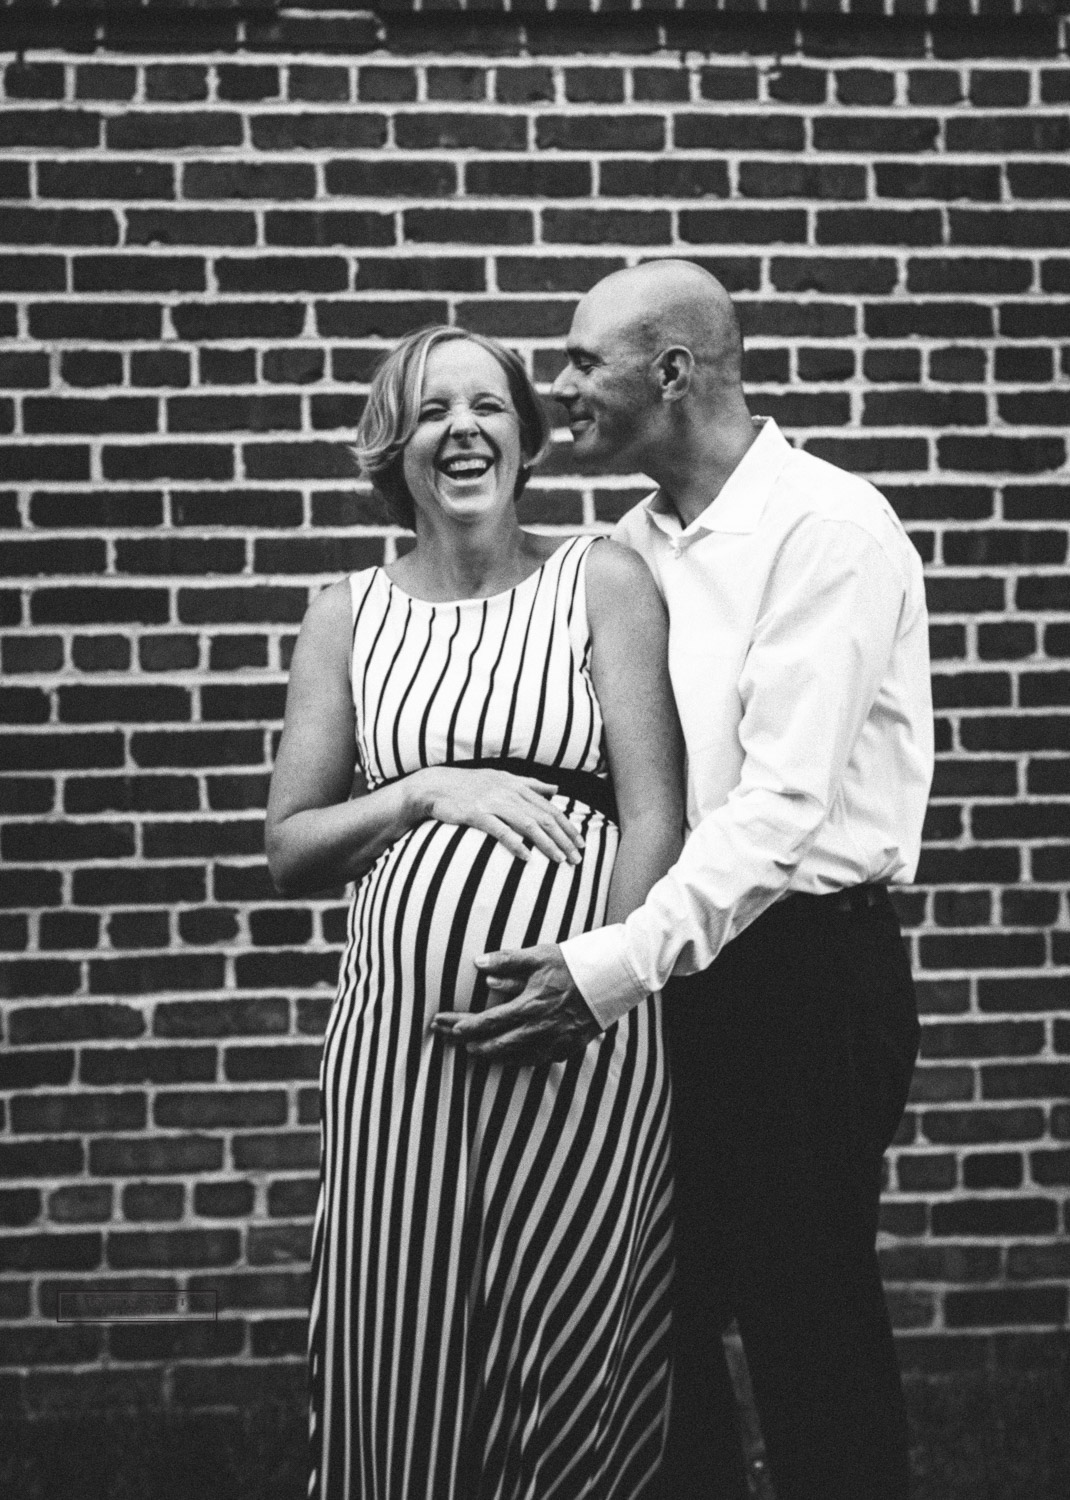 Pregnant mom laughing with husband